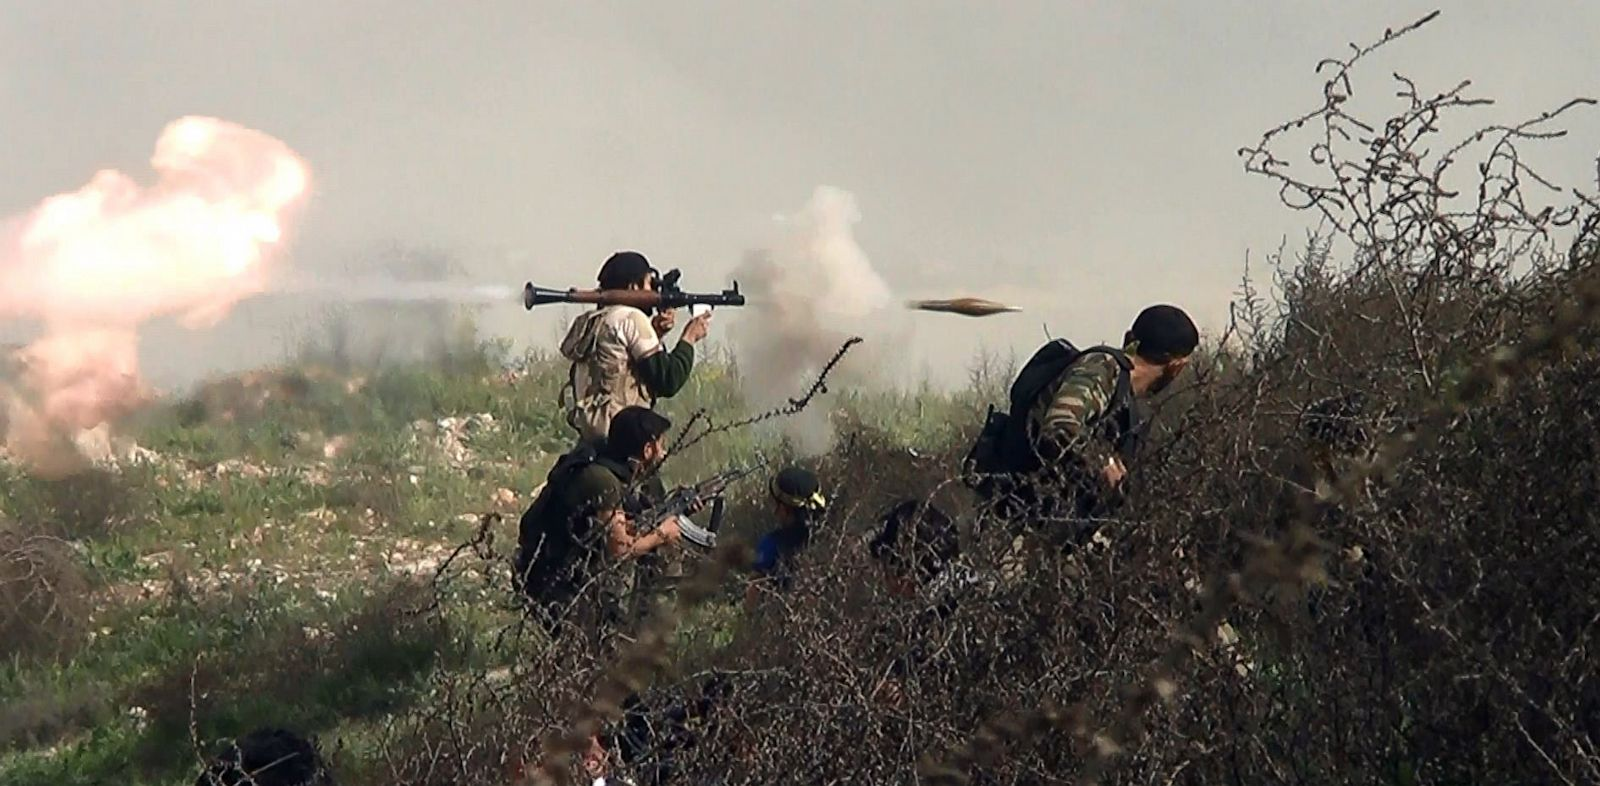 PHOTO: An image grab taken from a video shows an opposition fighter firing a rocket propelled grenade (RPG), Aug. 26, 2013, during clashes with regime forces over the strategic area of Khanasser, situated on the only road linking Aleppo to central Syria.